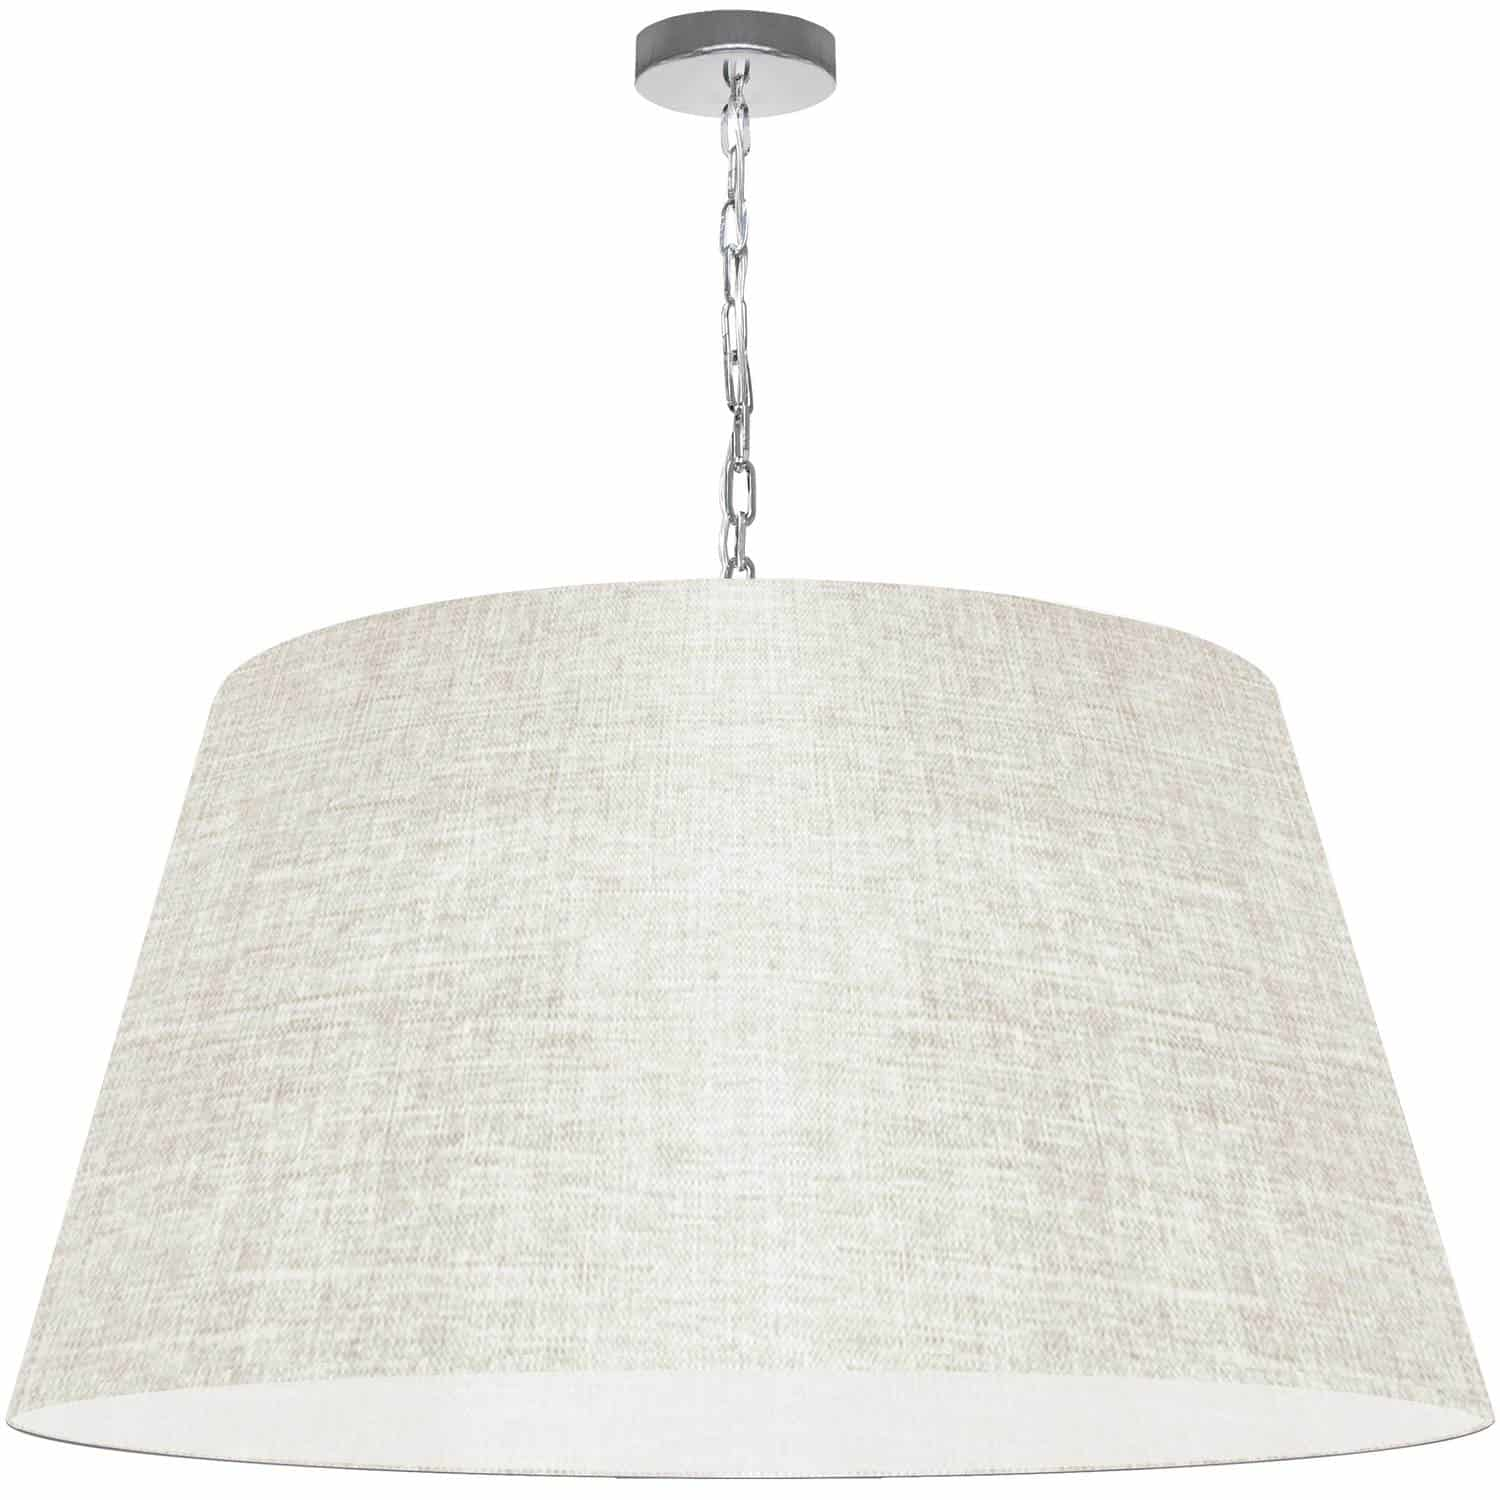 1 Light Brynn X-Large Pendant, Cream/Clear Shade, Polished Chrome